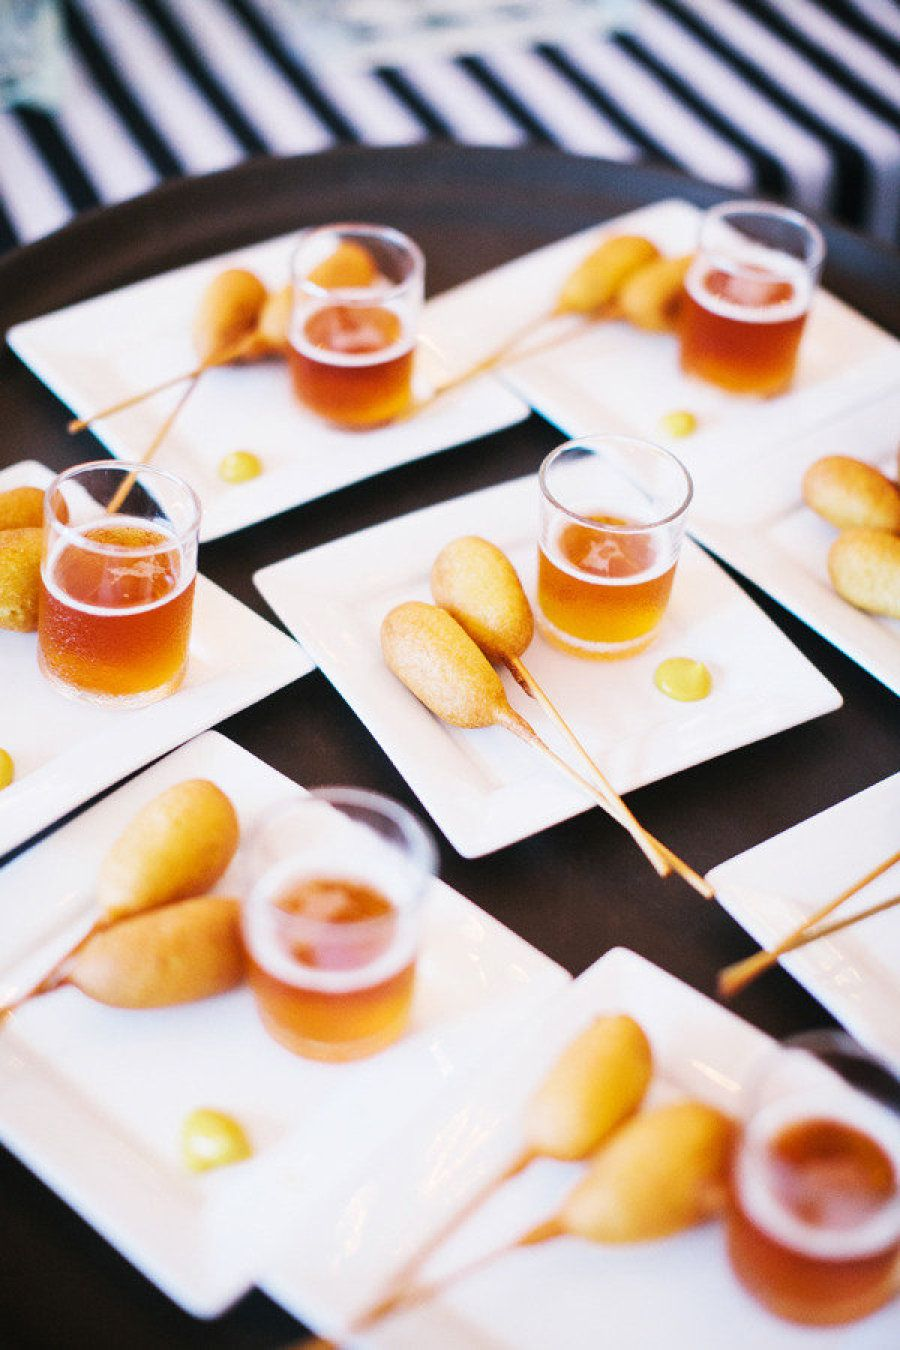 Mini corn dogs: http://www.stylemepretty.com/living/2015/05/21/26-foods-even-more-fun-on-a-stick/